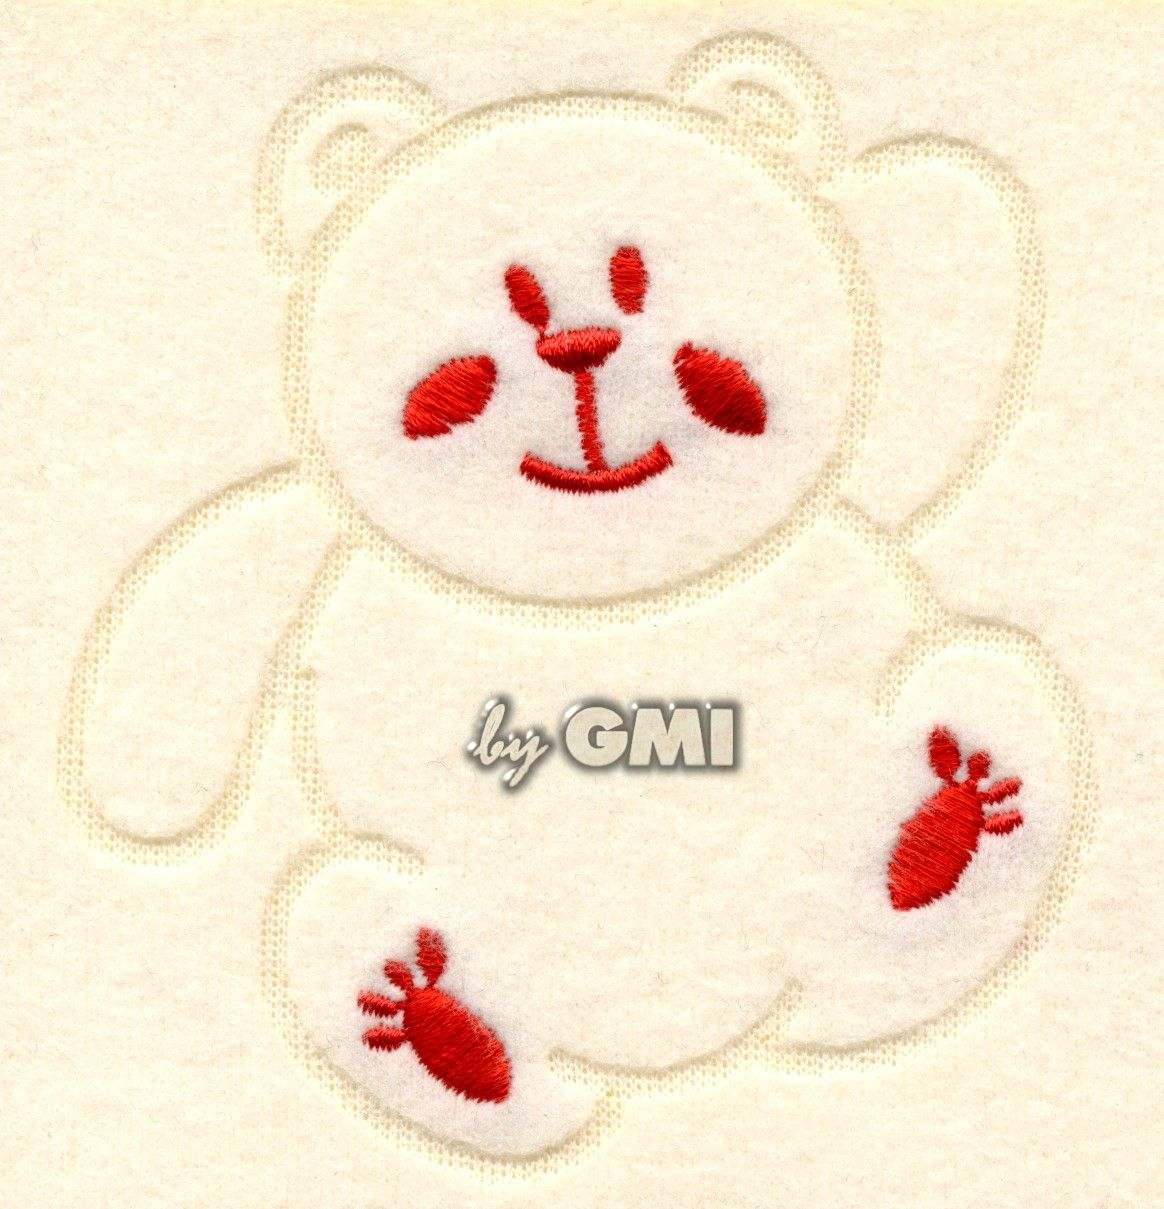 Soft as a snow flake, this bear engraved and embroidery on felt fabric. Made with GMI laser III machine.